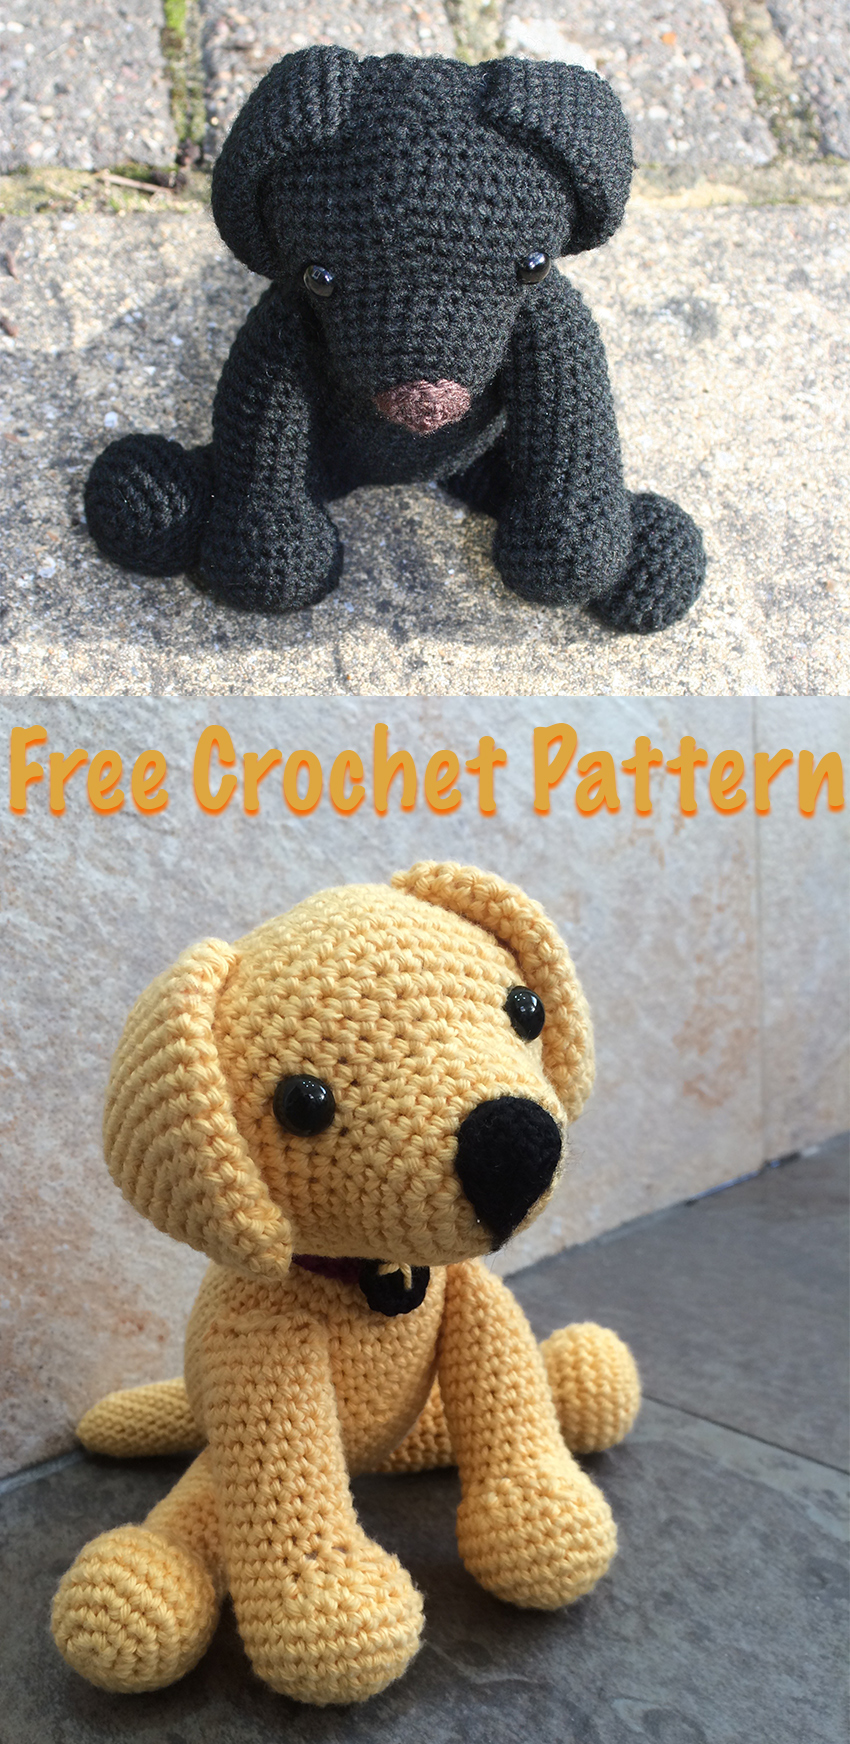 Free Crochet Lab Puppy Pattern. How to crochet your own toy Lab puppy, with simple instructions. By Lucy Kate Crochet.